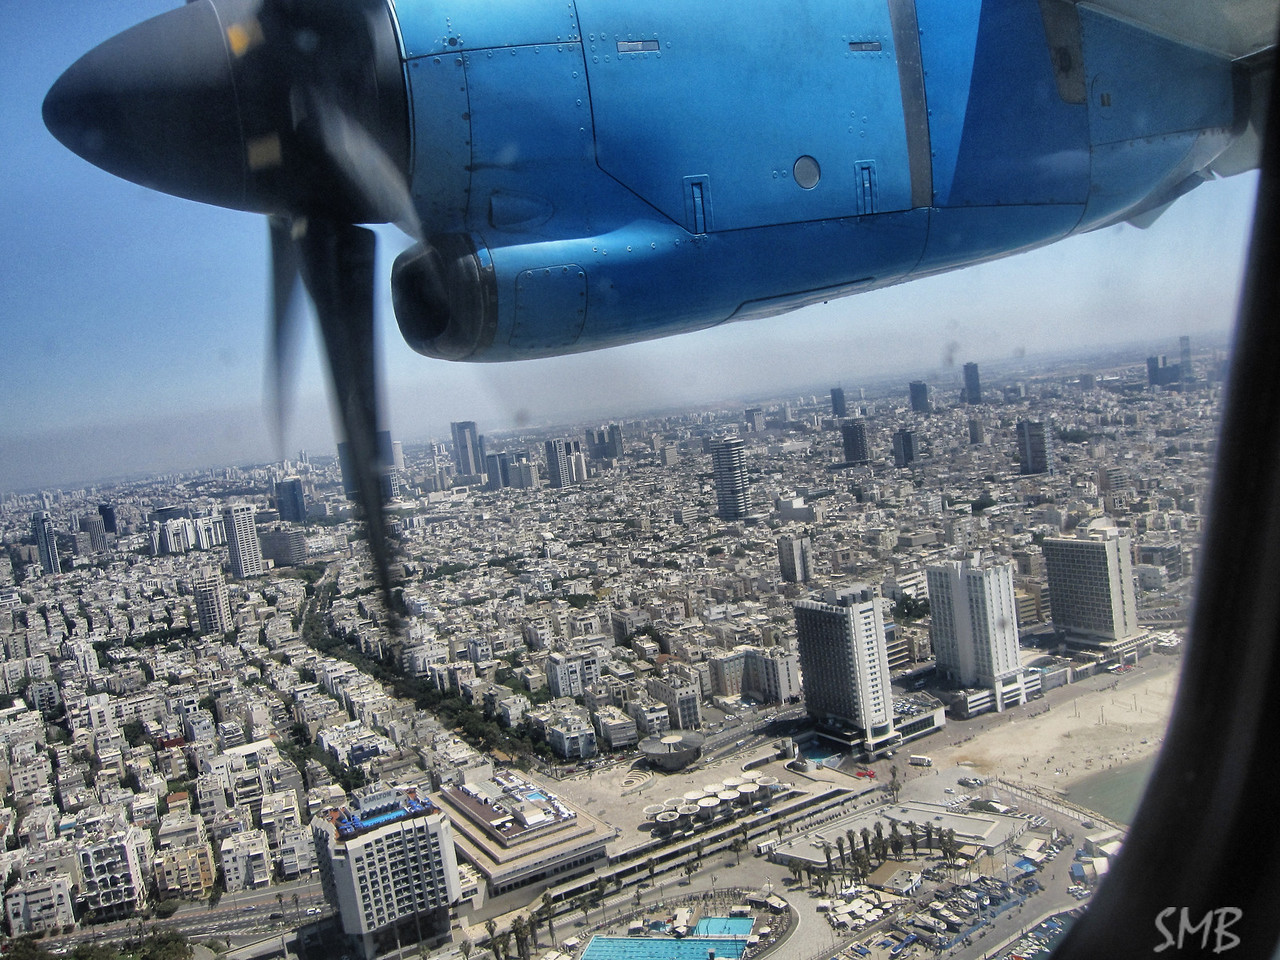 On the plane from Eliat flying over Tel Aviv